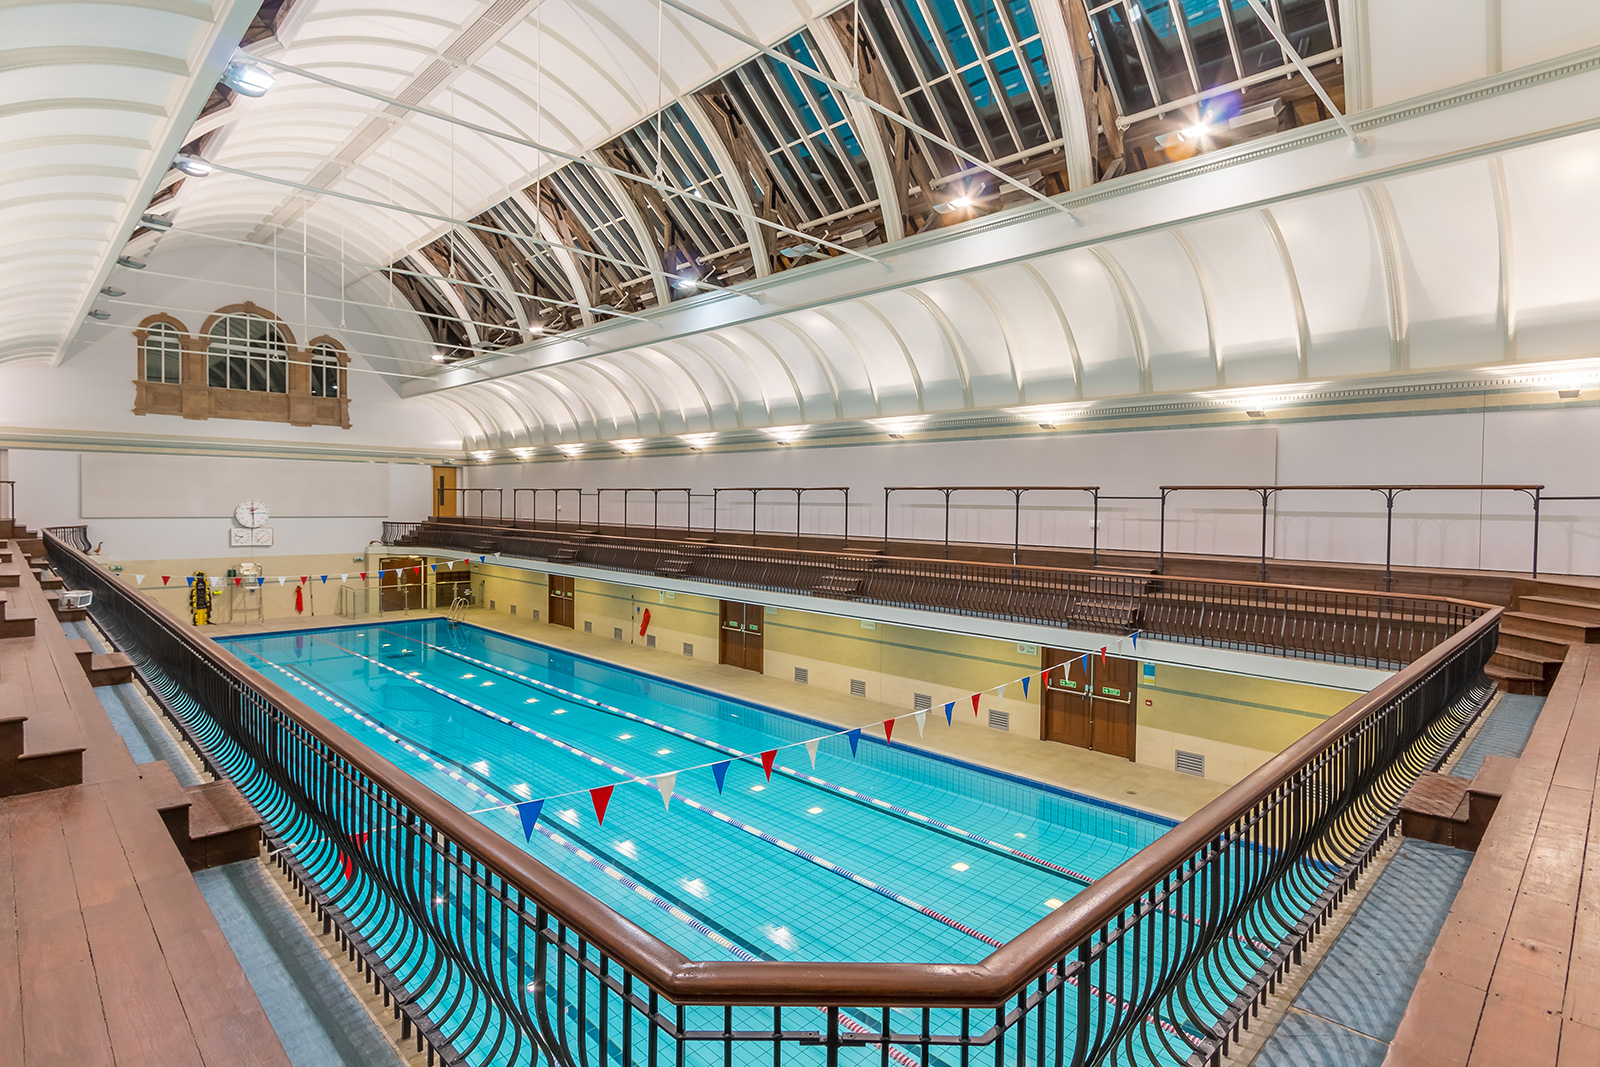 British swimming pools – Kentish Town Baths